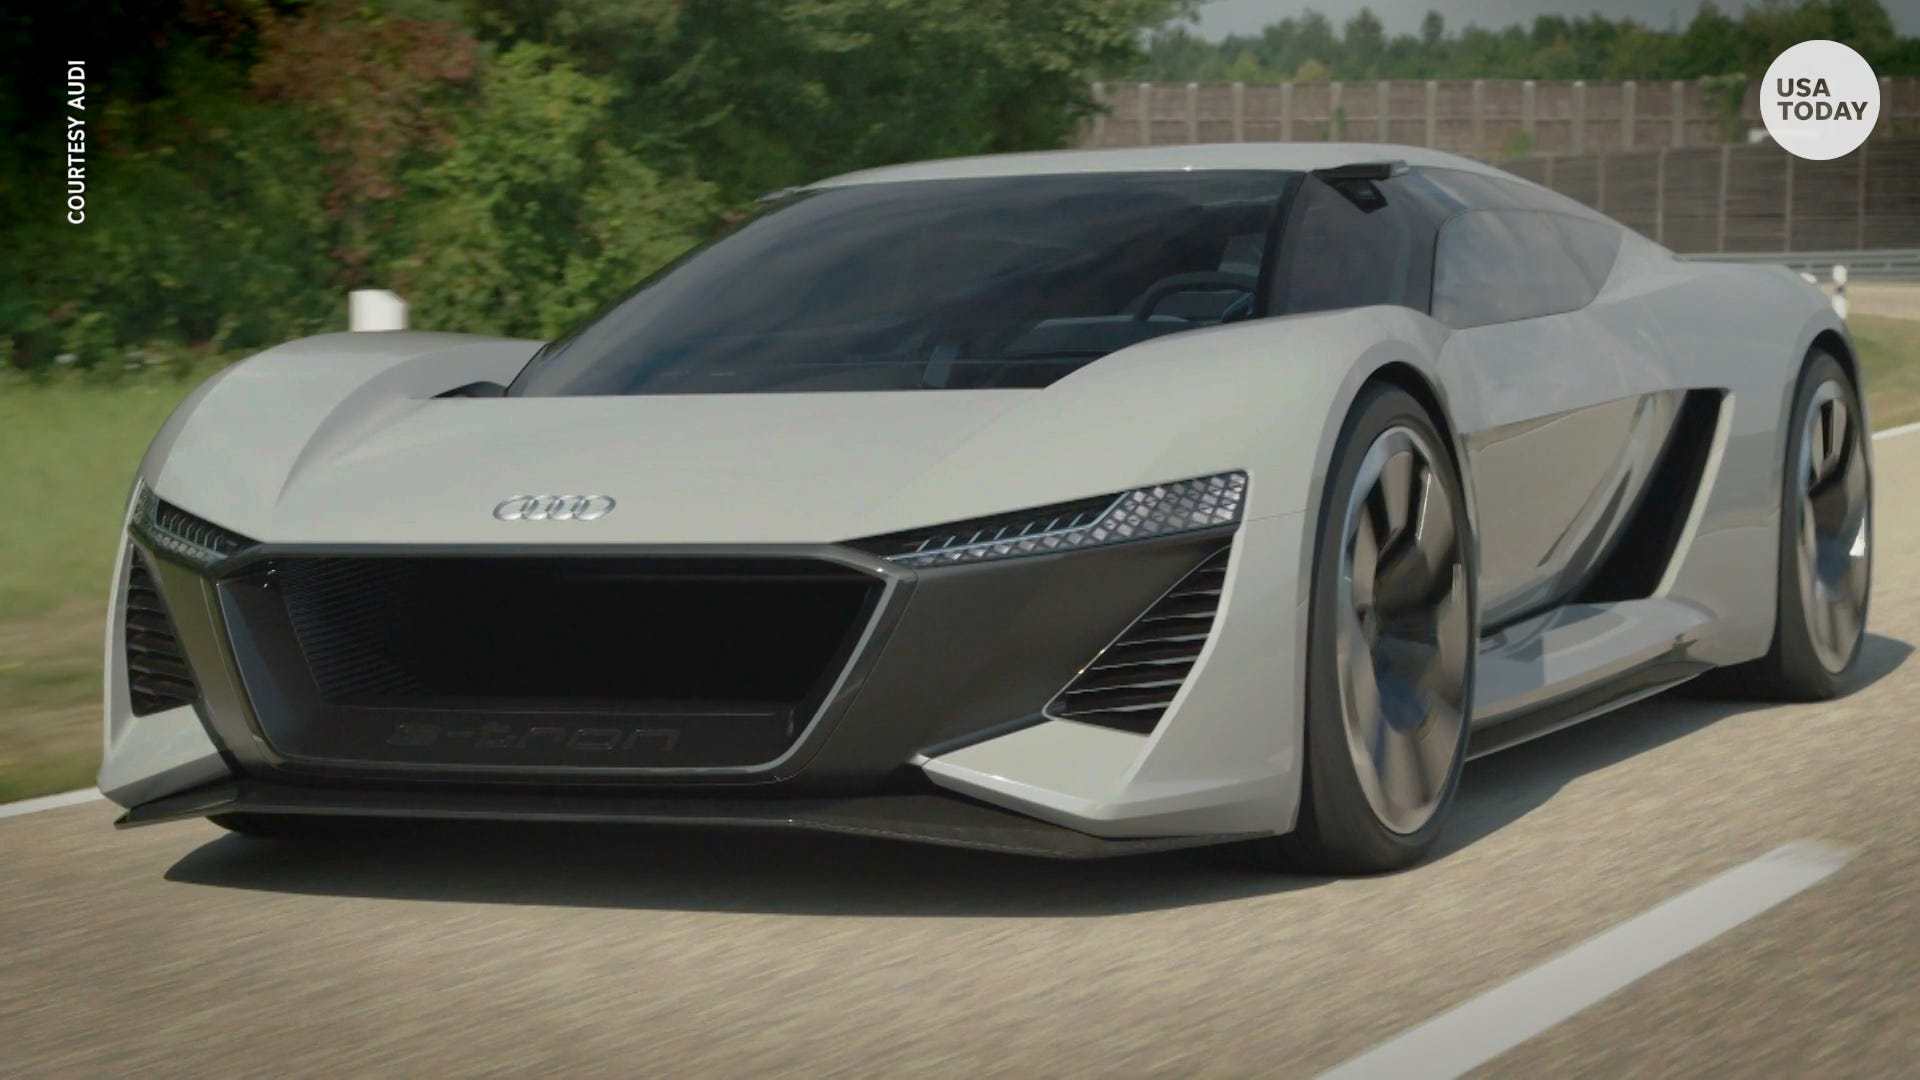 Audi S >> Audi's sleek electric car won't 'purr' like most sports cars